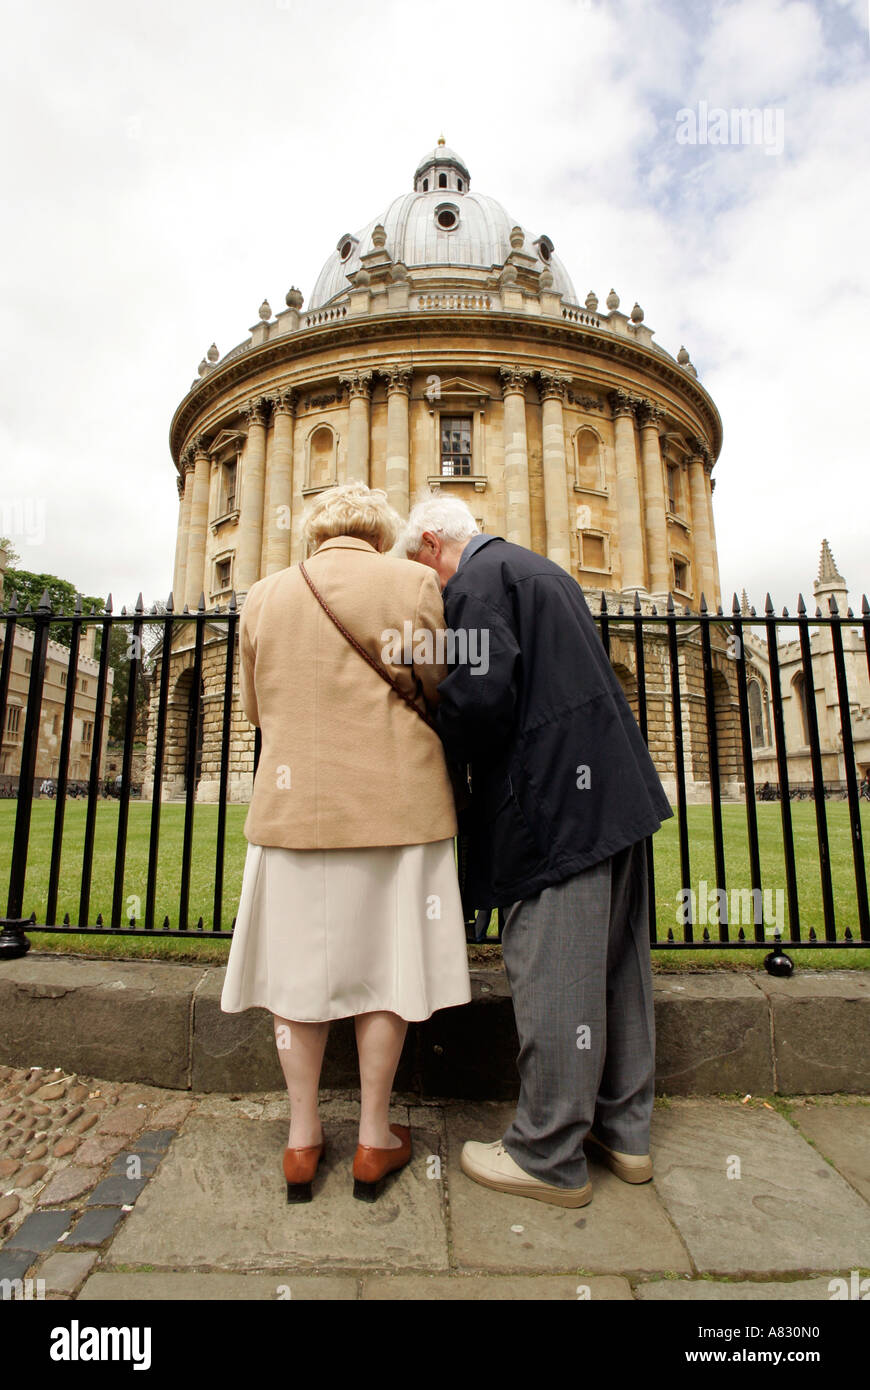 two elderly sightseers in Oxford in front of Radcliffe Camera - Stock Image